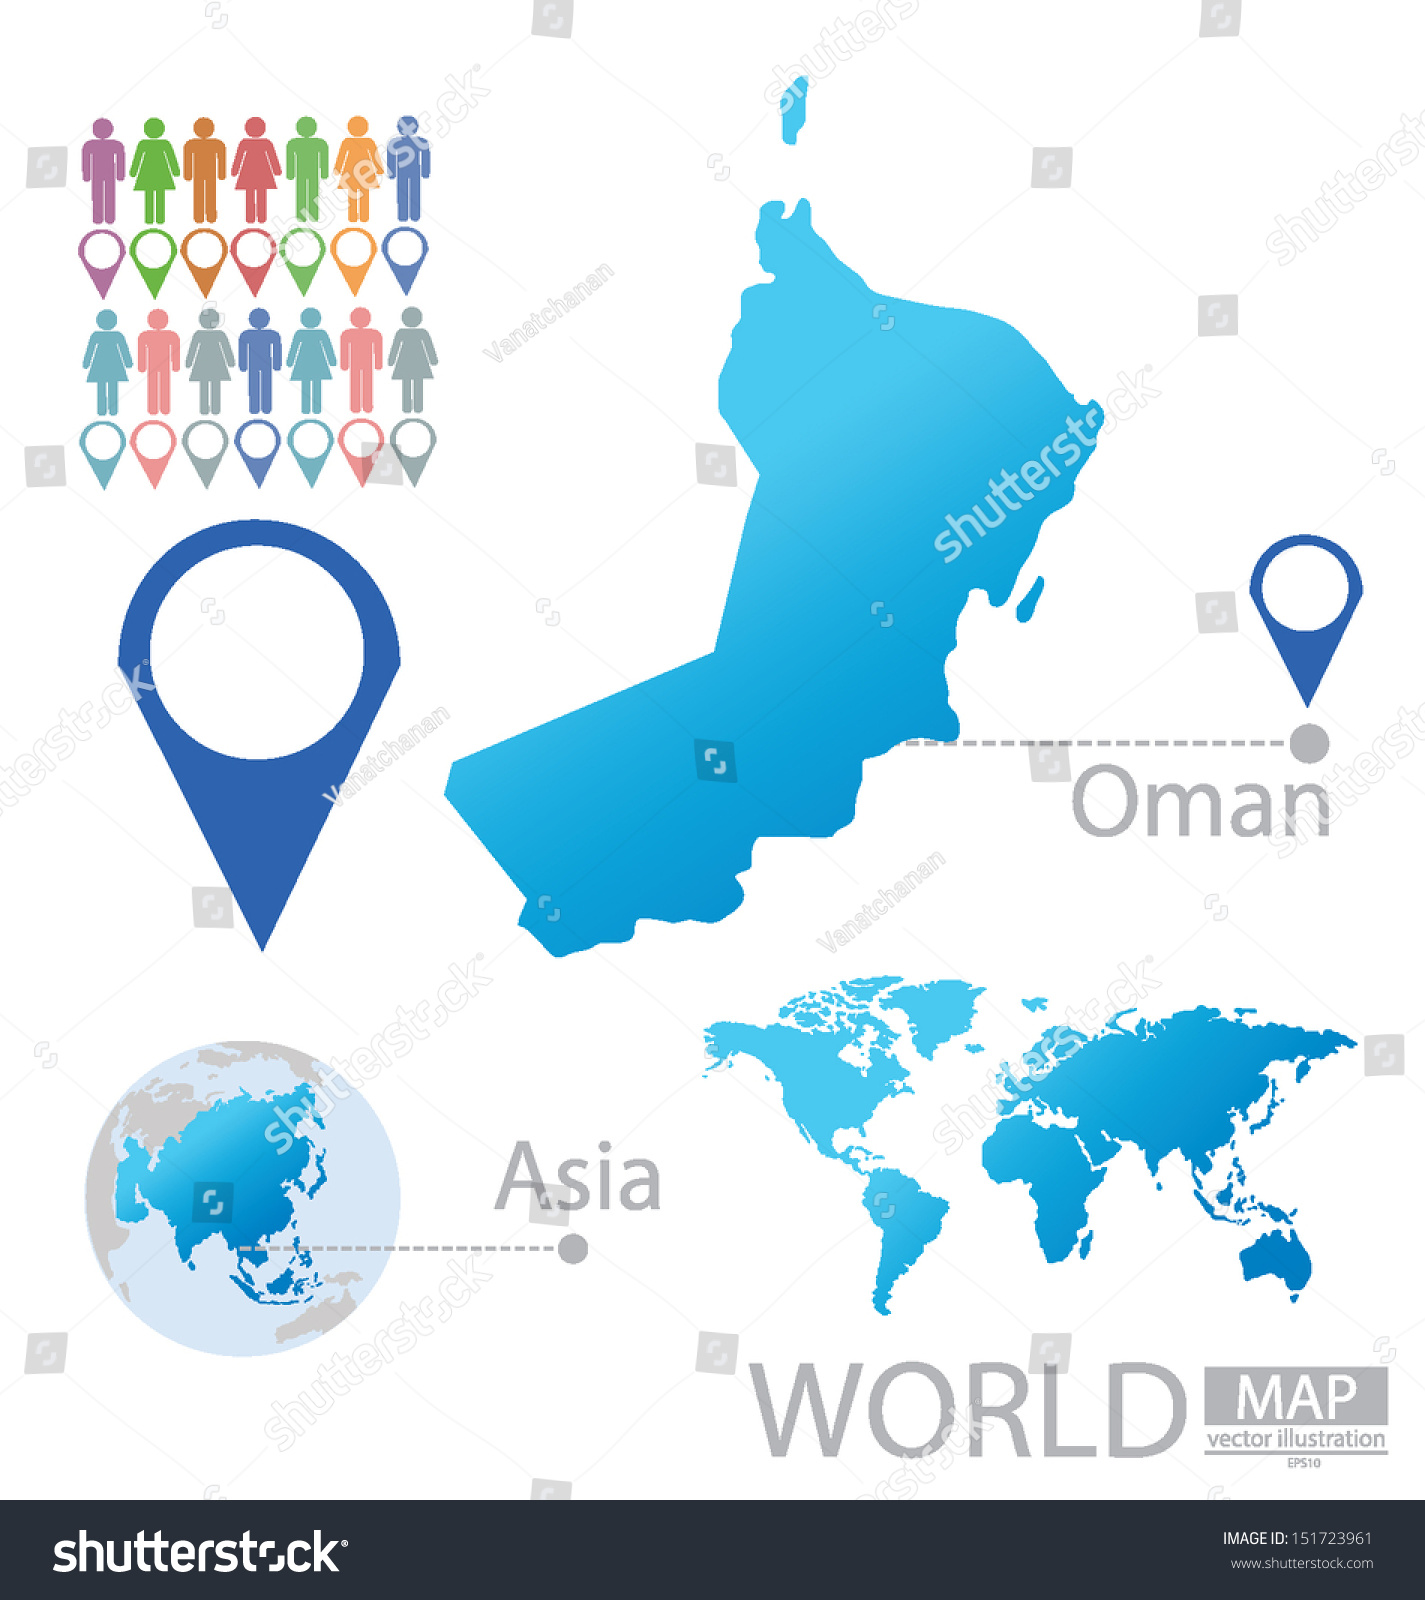 Sultanate oman asia world map vector stock vector royalty free sultanate of oman asia world map vector illustration gumiabroncs Gallery